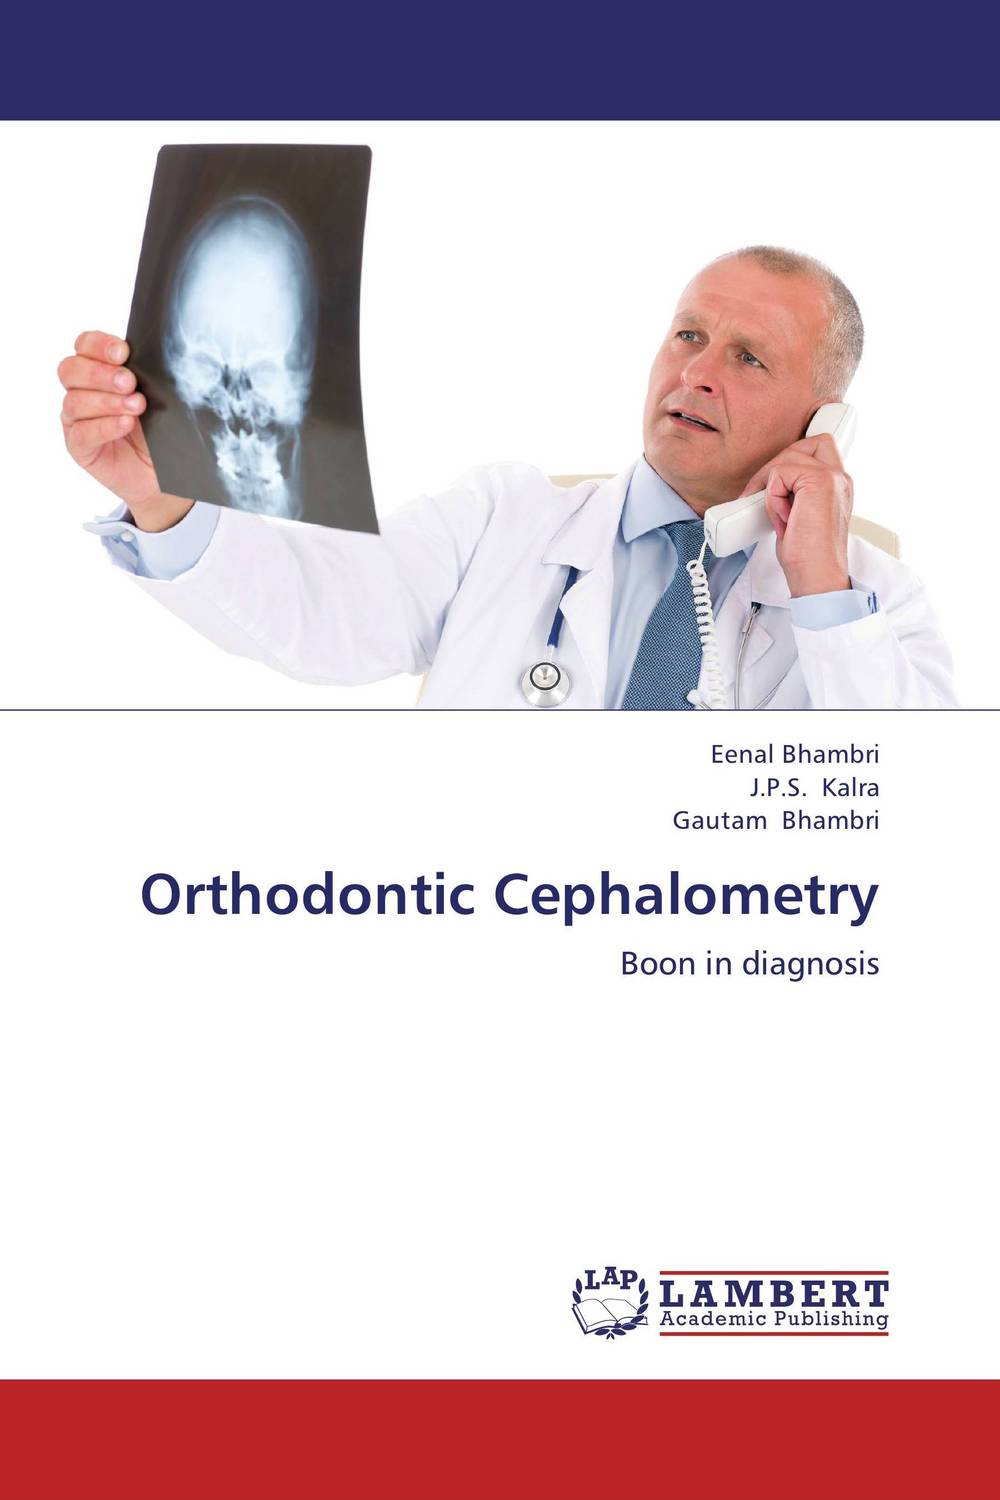 Orthodontic Cephalometry franke bibliotheca cardiologica ballistocardiogra phy research and computer diagnosis